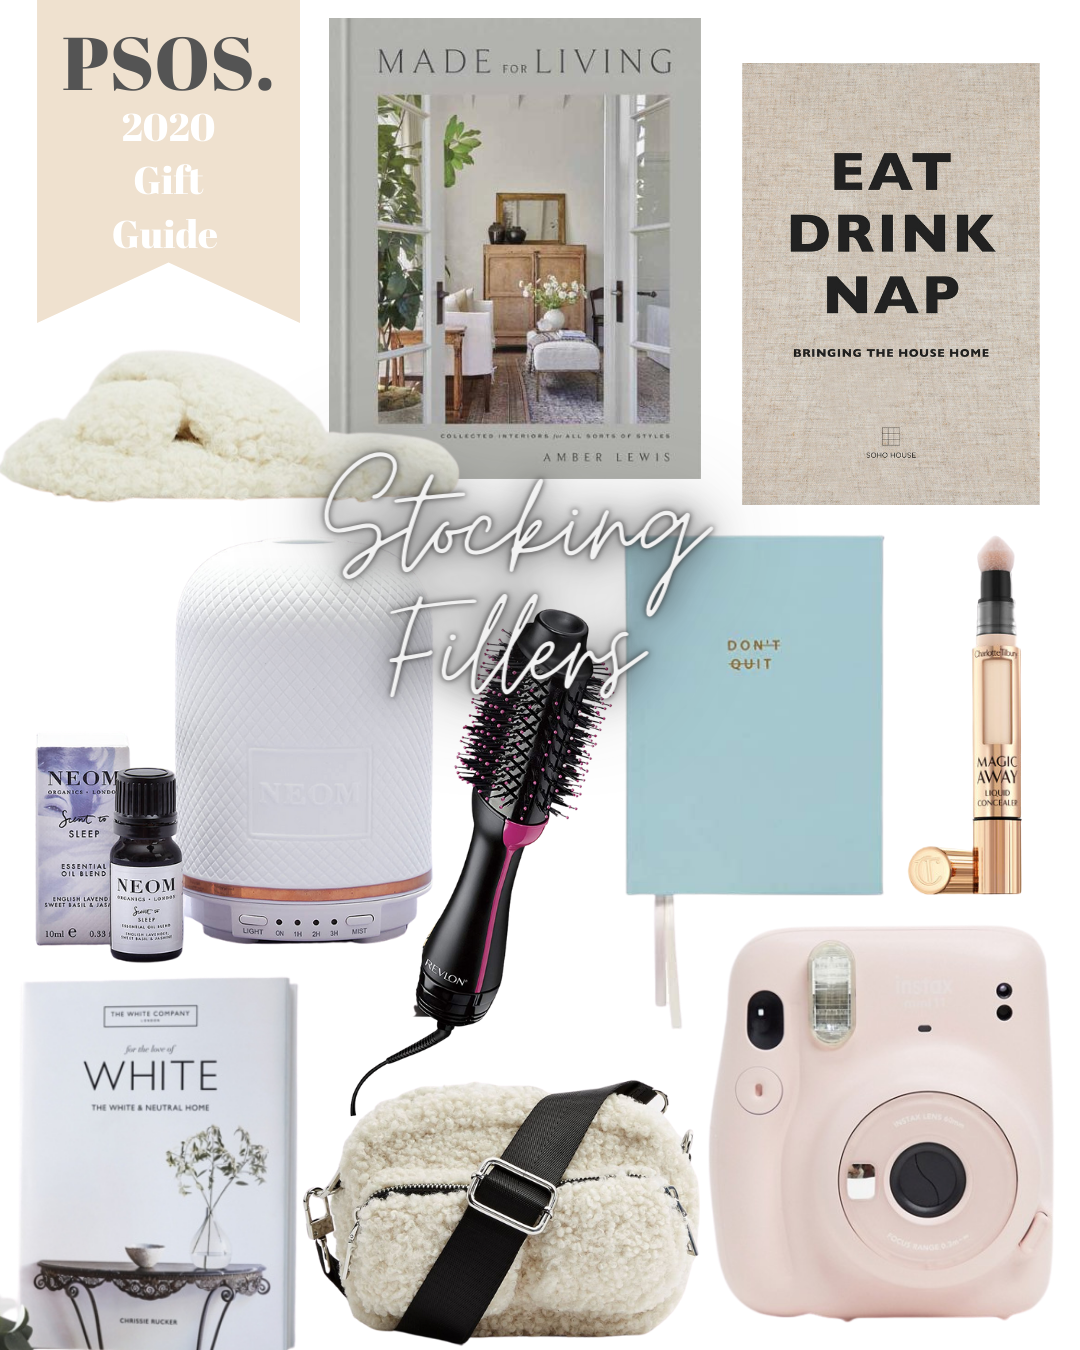 Stocking filler gift guide ideas for best friend, fiancé, girlfriend